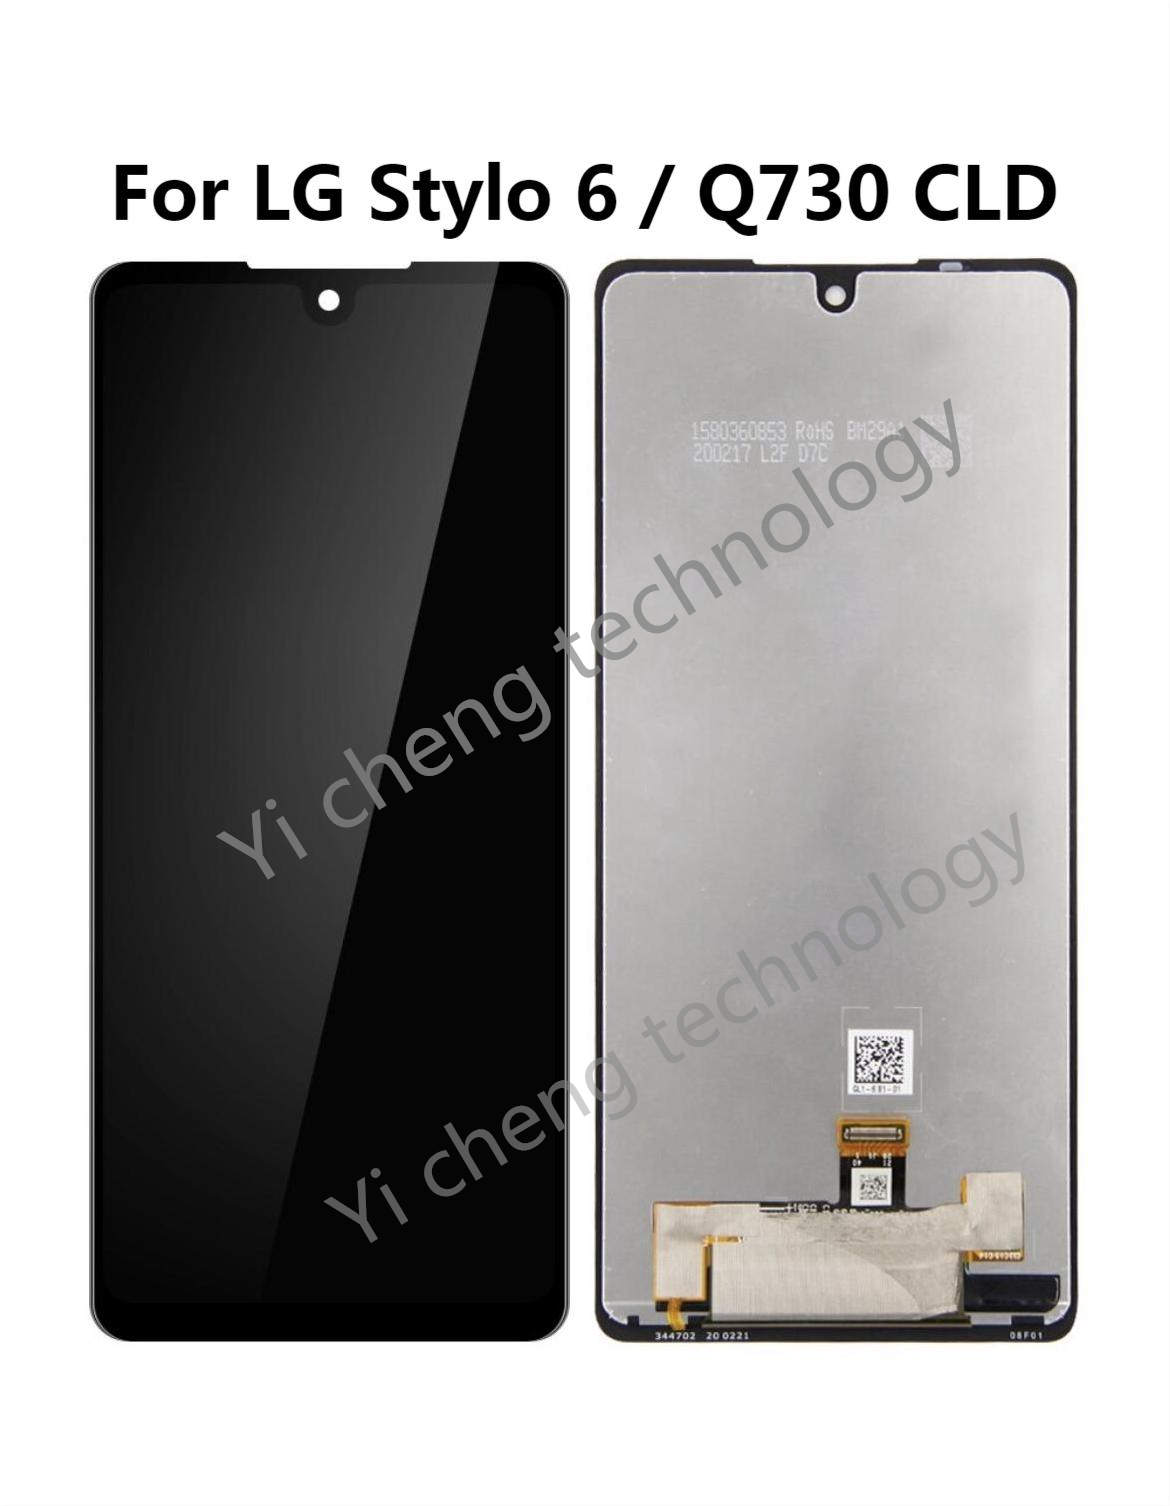 For LG Stylo 6 Q730 LCD Display Touch Screen Digitizer Assembly For LG LM-Q730TM lcd Replacement Accessory For LG Stylo6 lcd